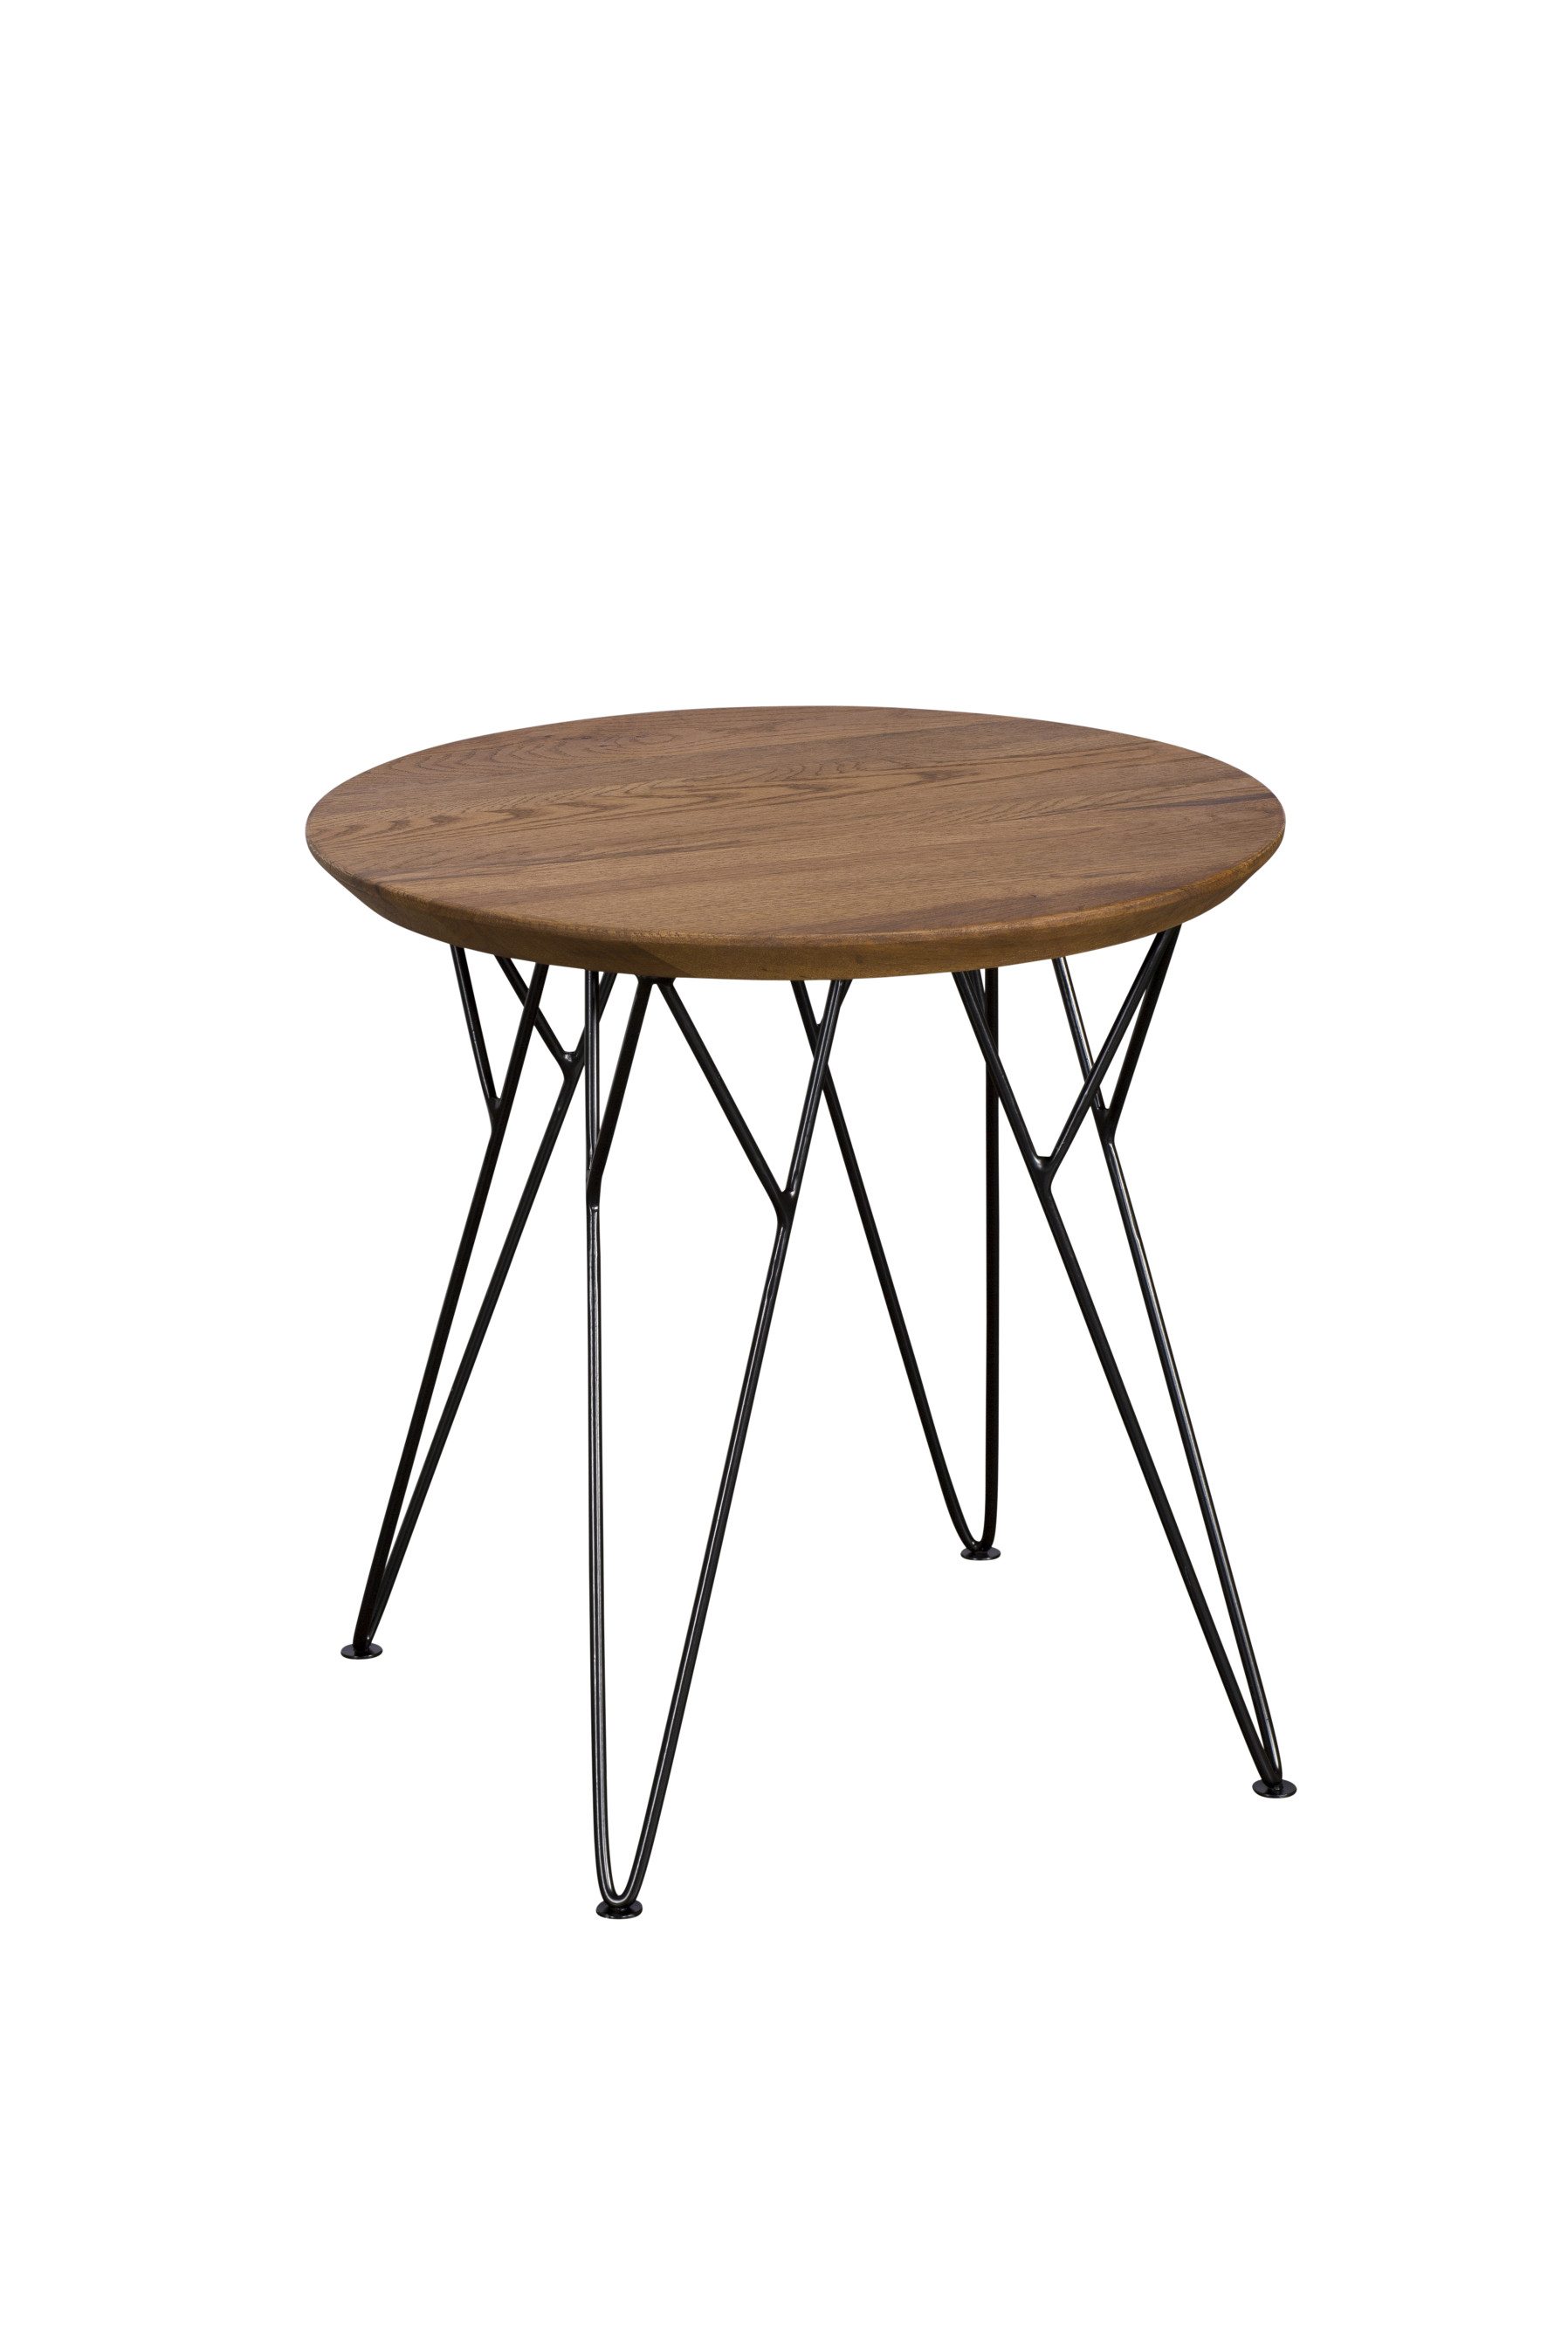 Heathfield Slight Round Lamp Table